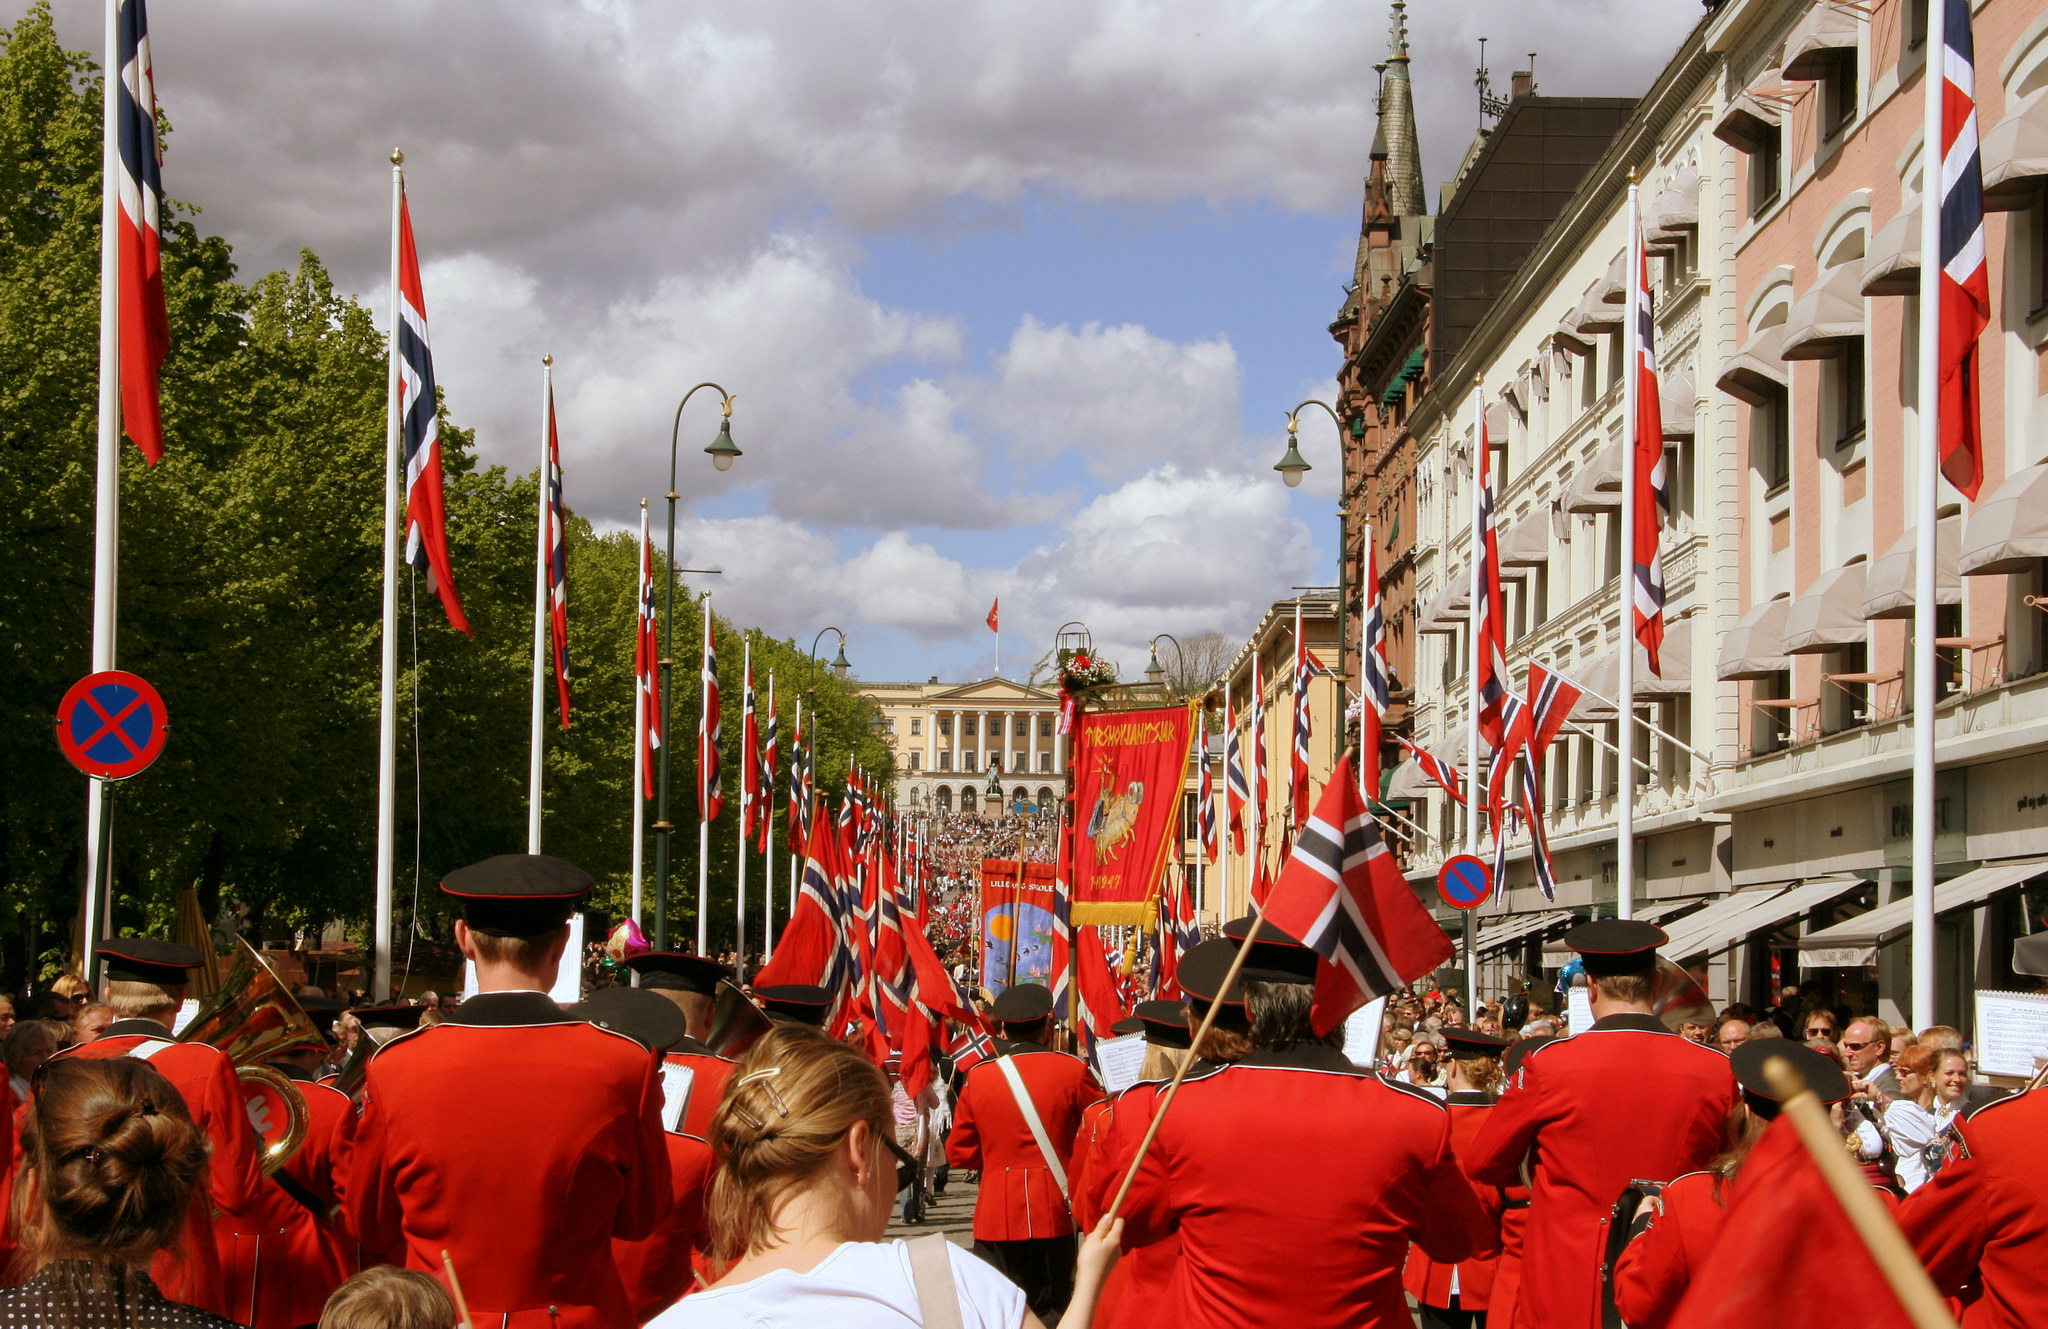 Norway-s-National-Day-in-Oslo-17th-of-May-007781-hm